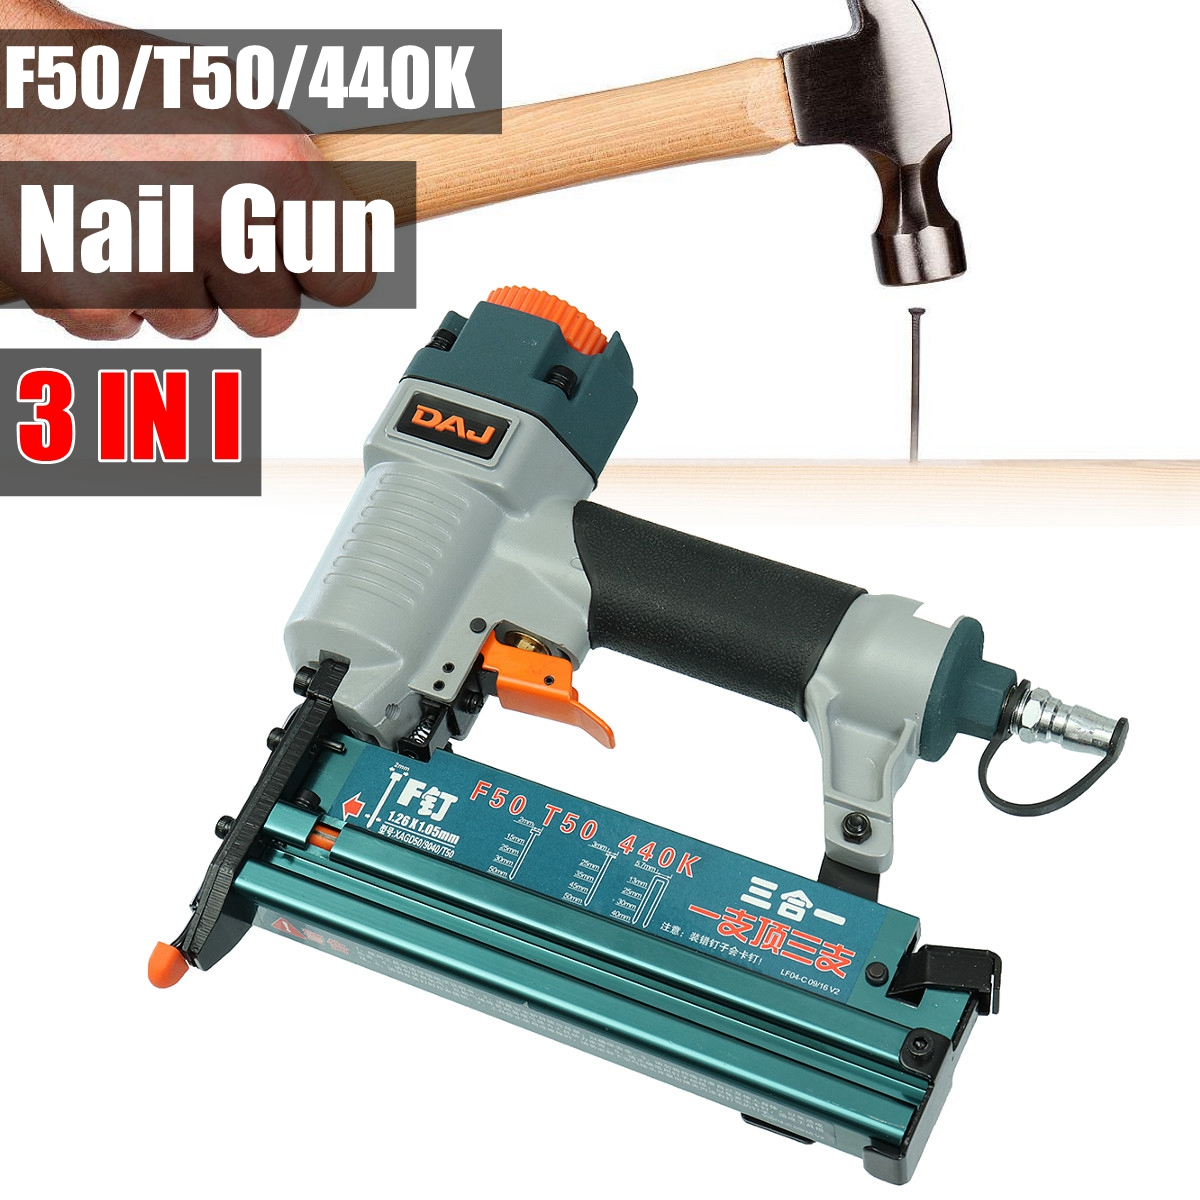 цена на Portable 3 In1 Air Brad Nail Guns Stapler Finish Nailer Pneumatic Finishing Nail Tool For T50 F50 440K